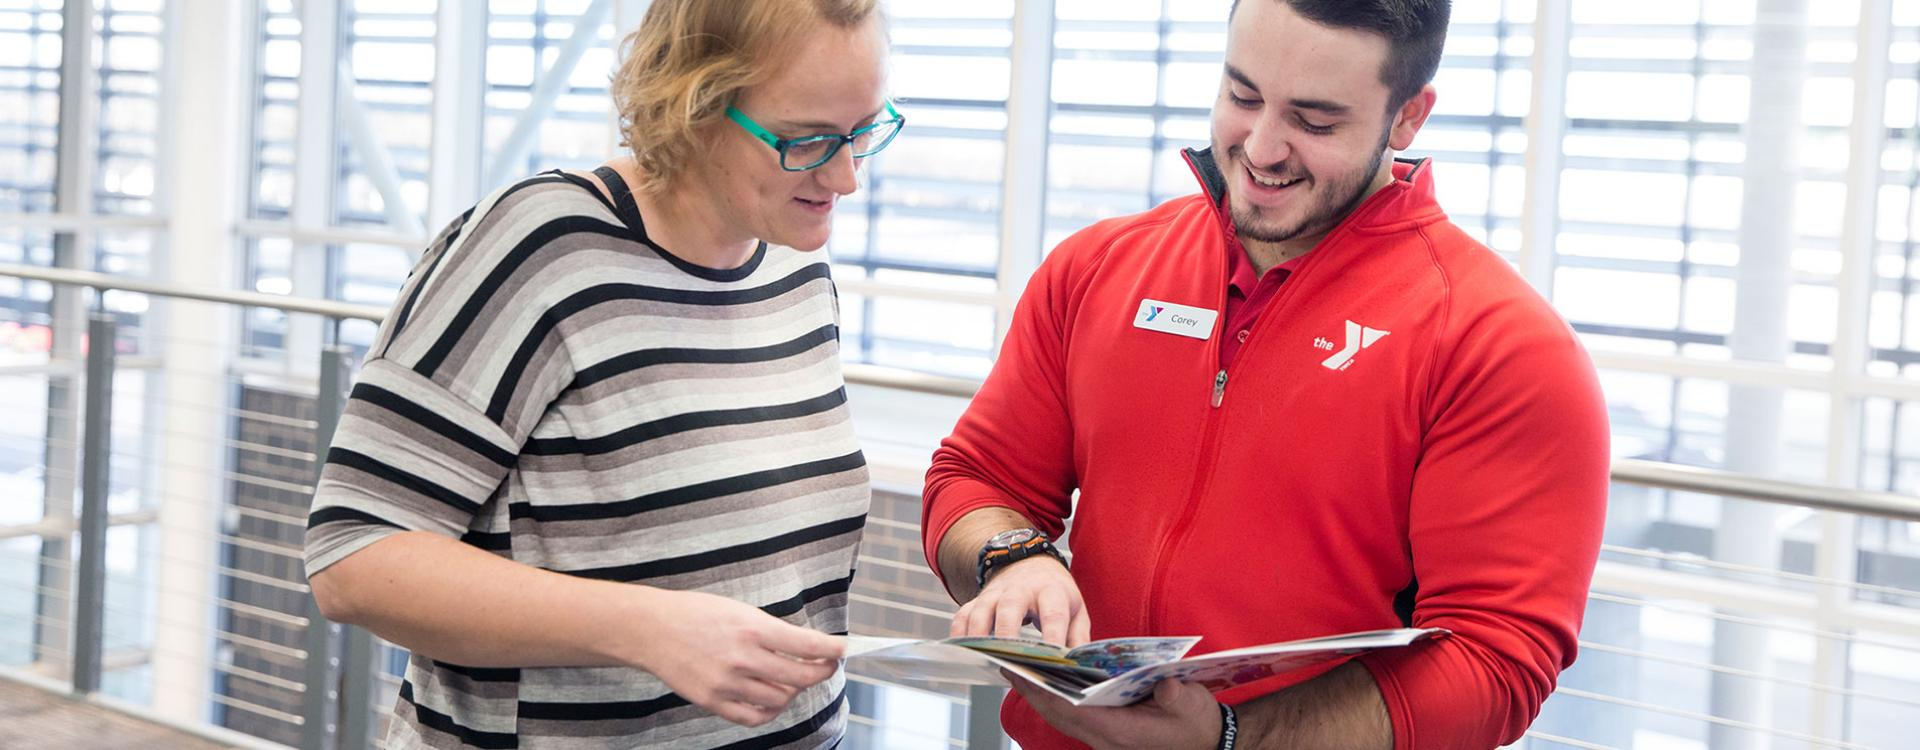 GREATER WICHITA YMCA | Membership Options and Rates